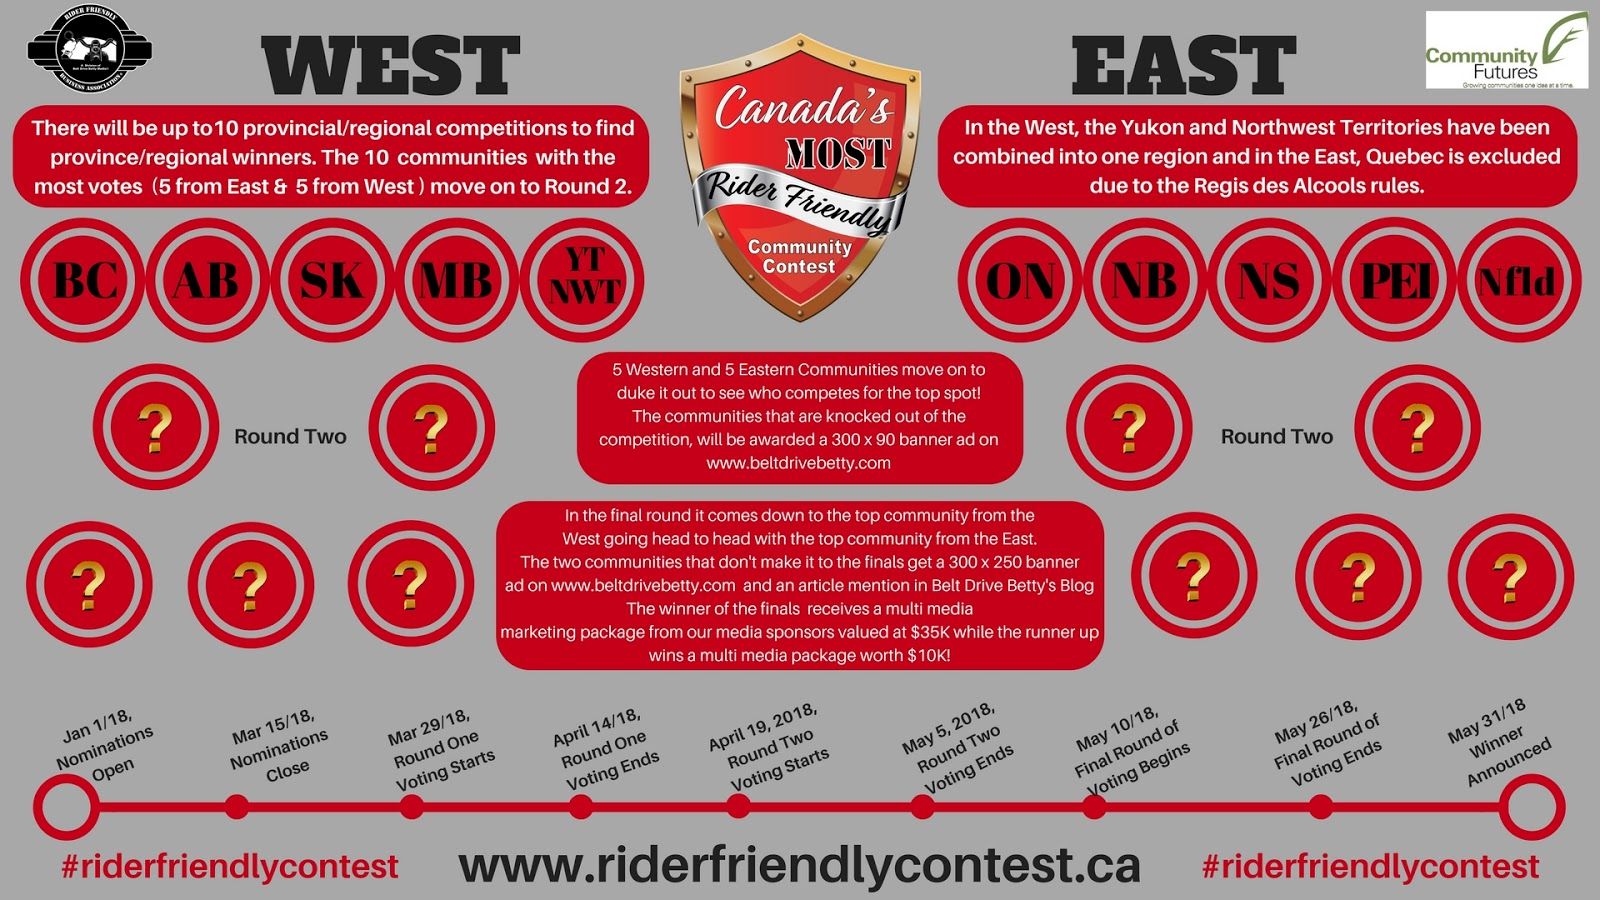 Canada's Most Rider Friendly Community Contest Timeline